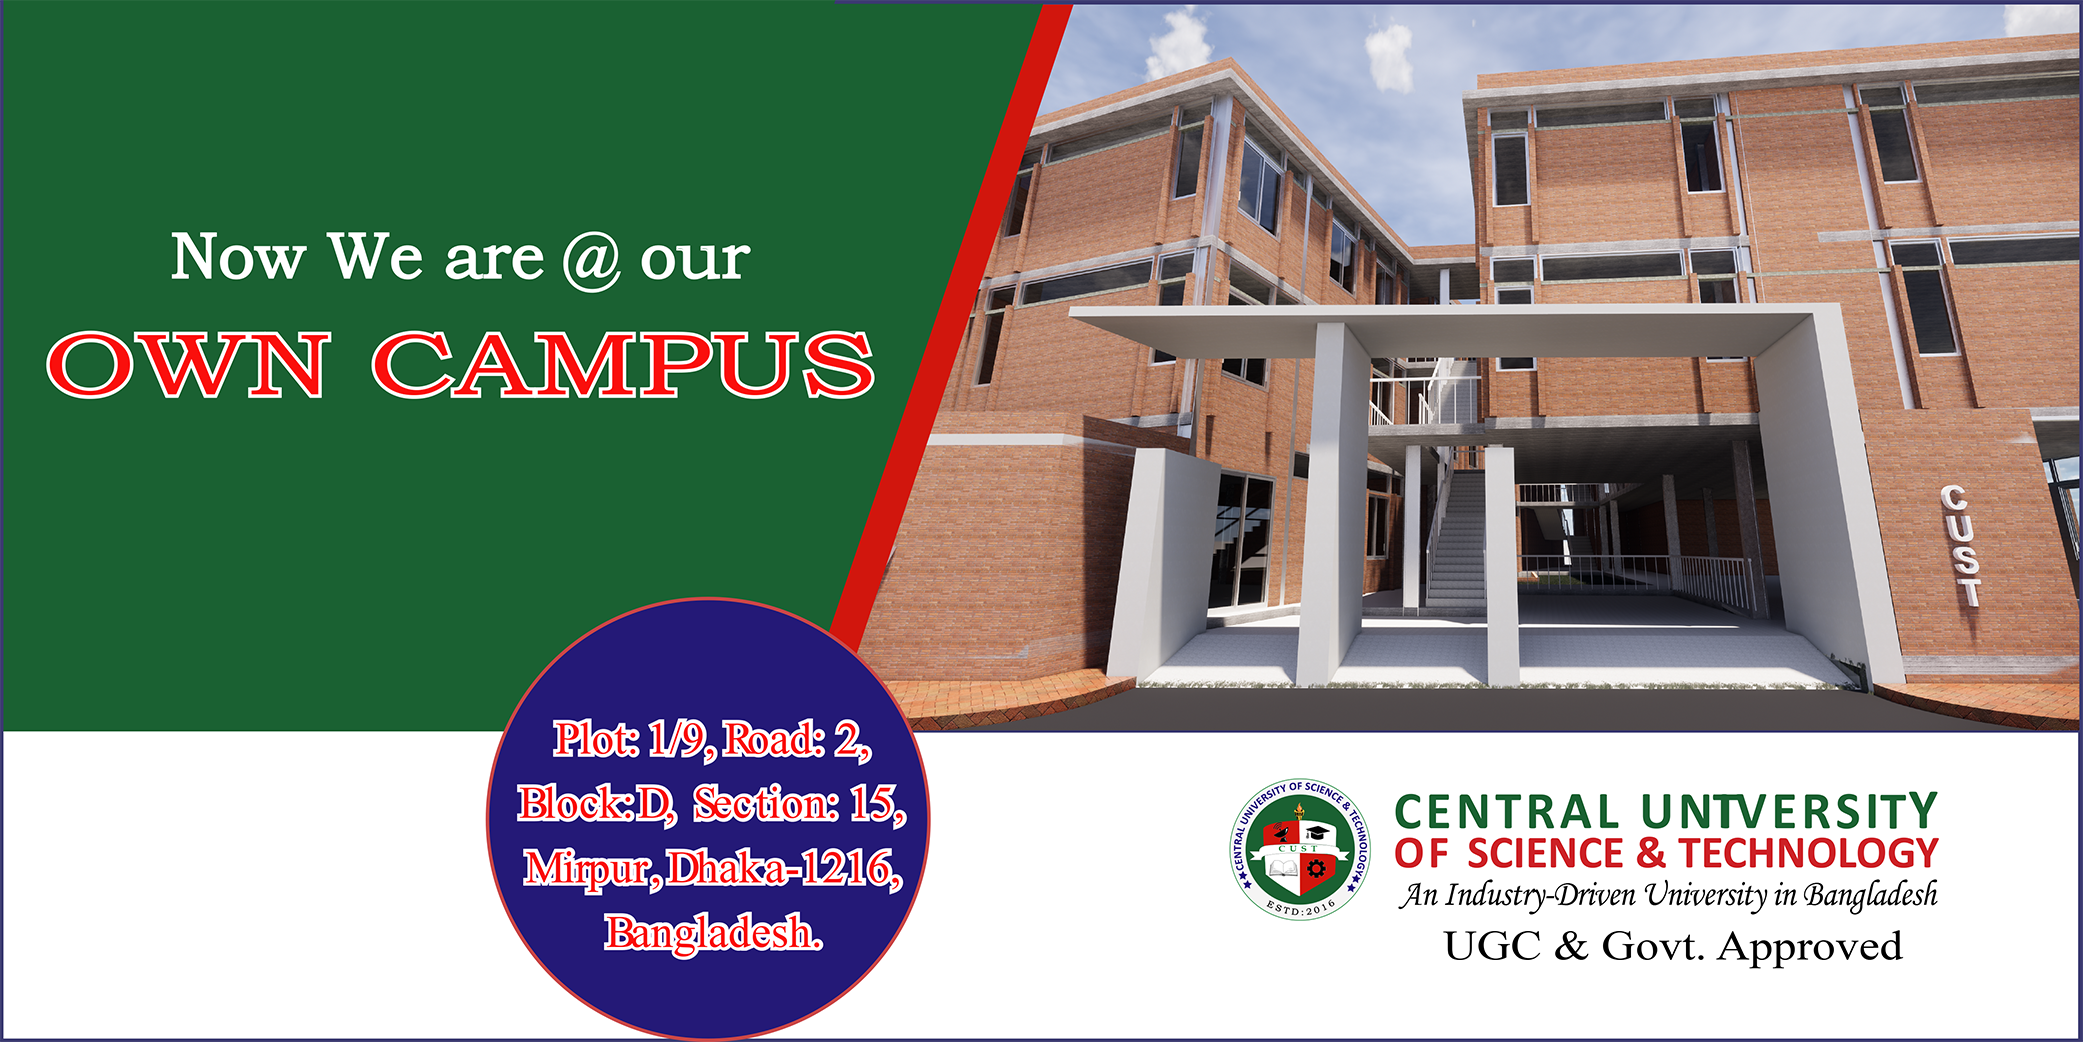 Now we are @ our Own Campus